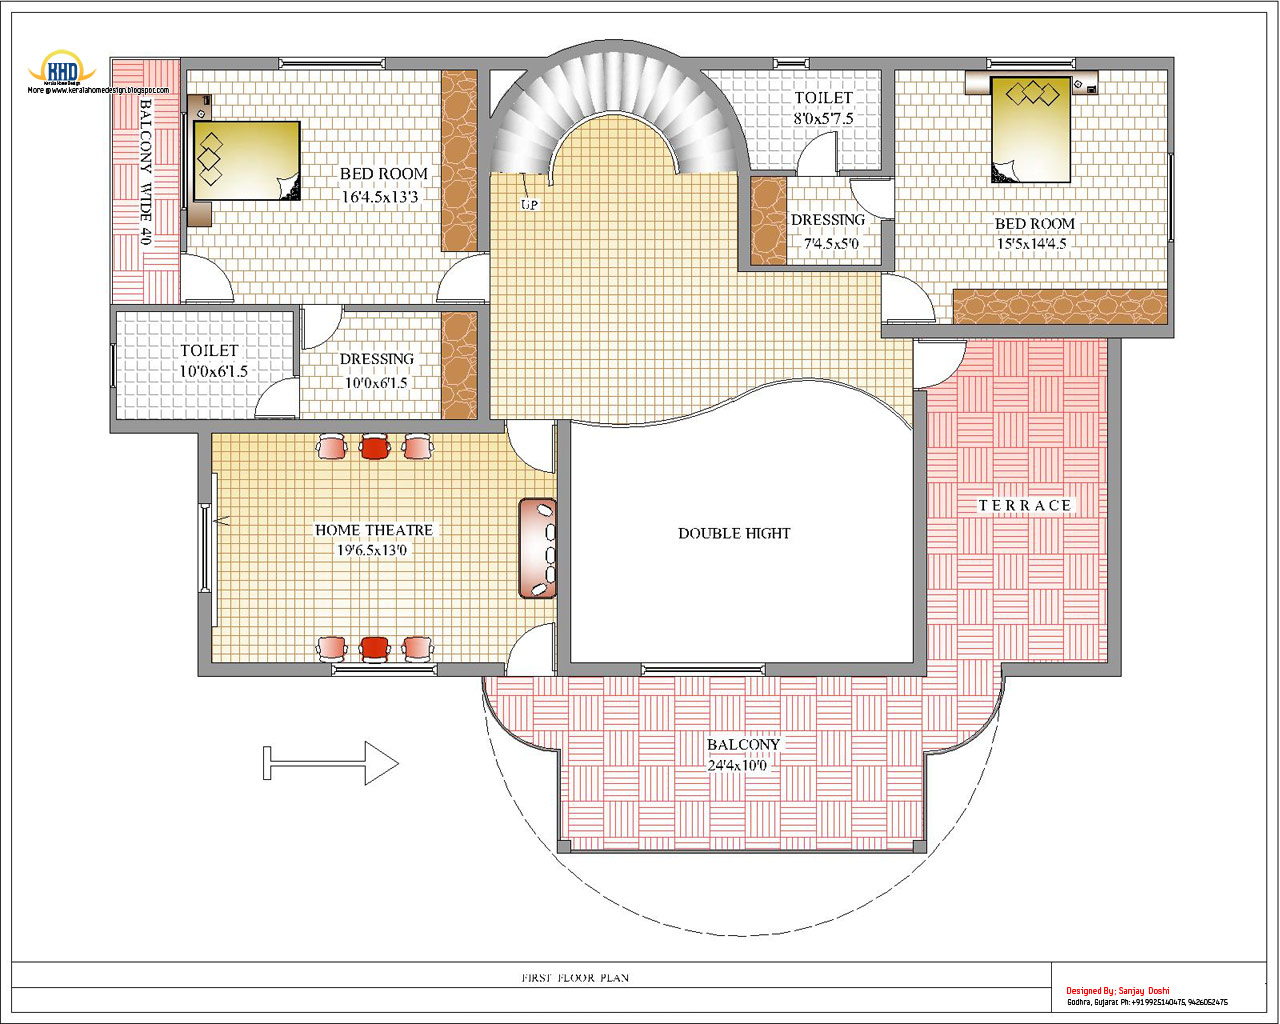 Duplex House First Floor Plan - 392 Sq M (4217 Sq. Ft.) - February ...